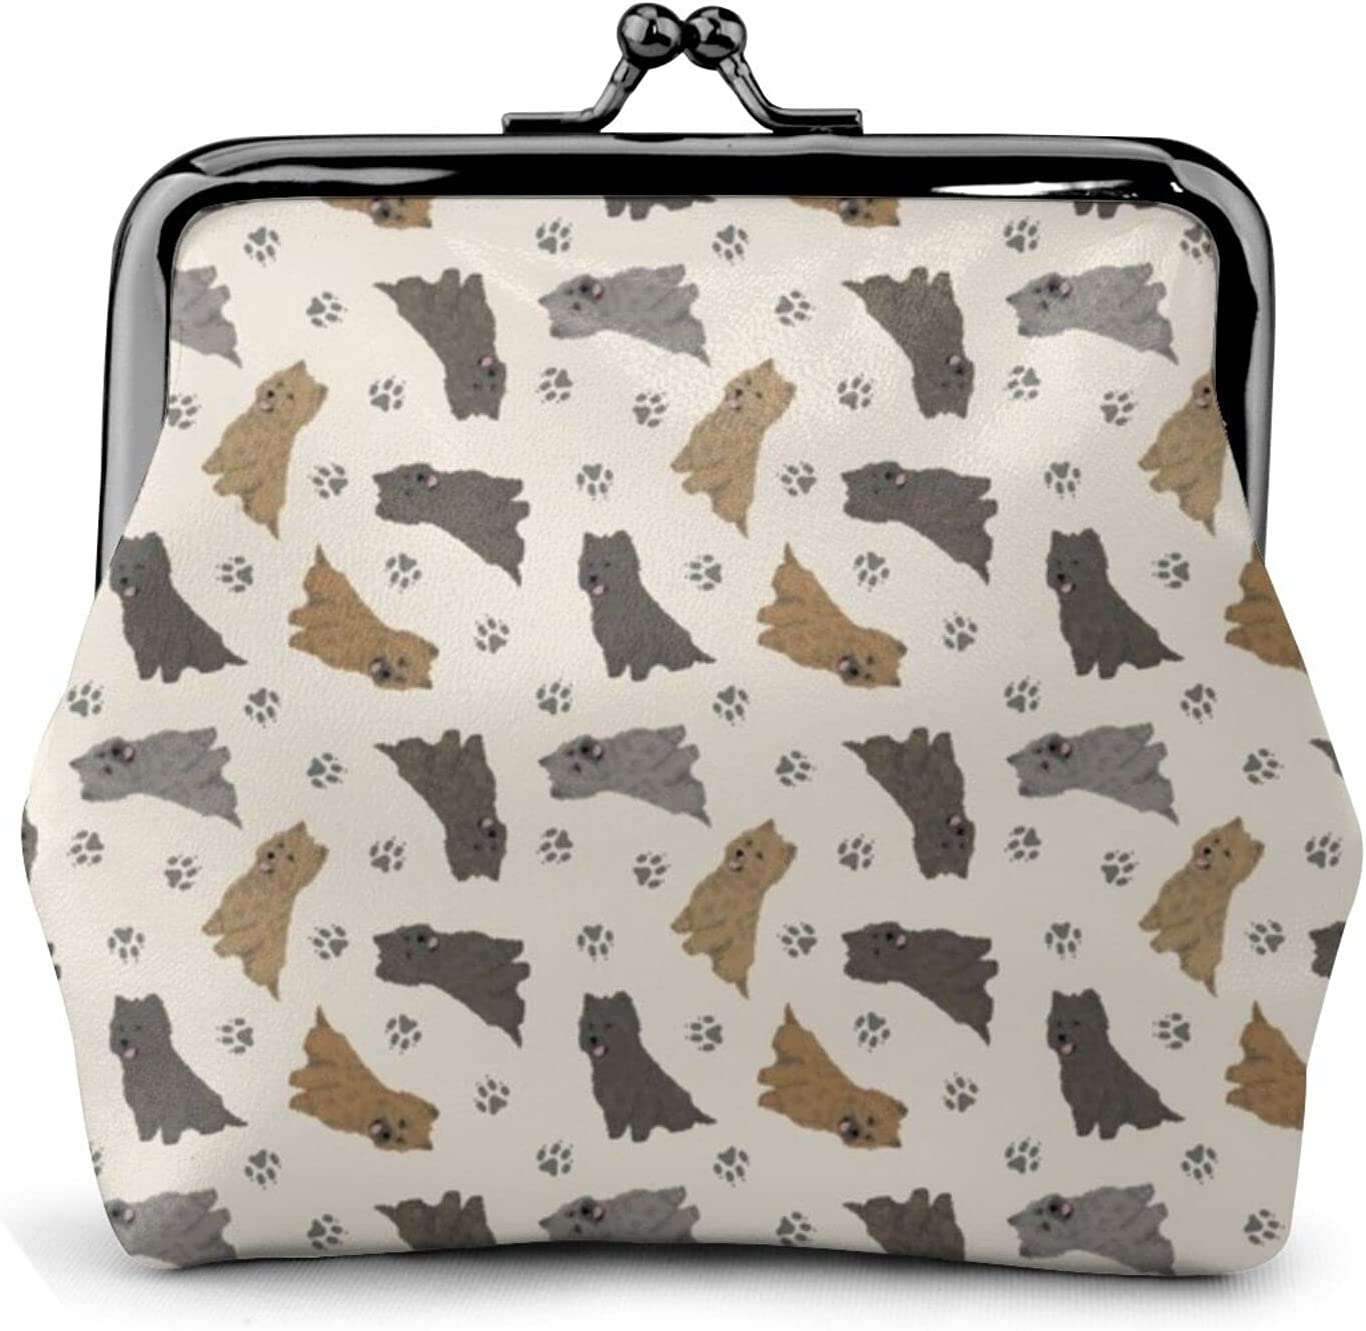 Cairn Terriers Tan 1376 Coin Purse Retro Money Pouch with Kiss-lock Buckle Small Wallet for Women and Girls